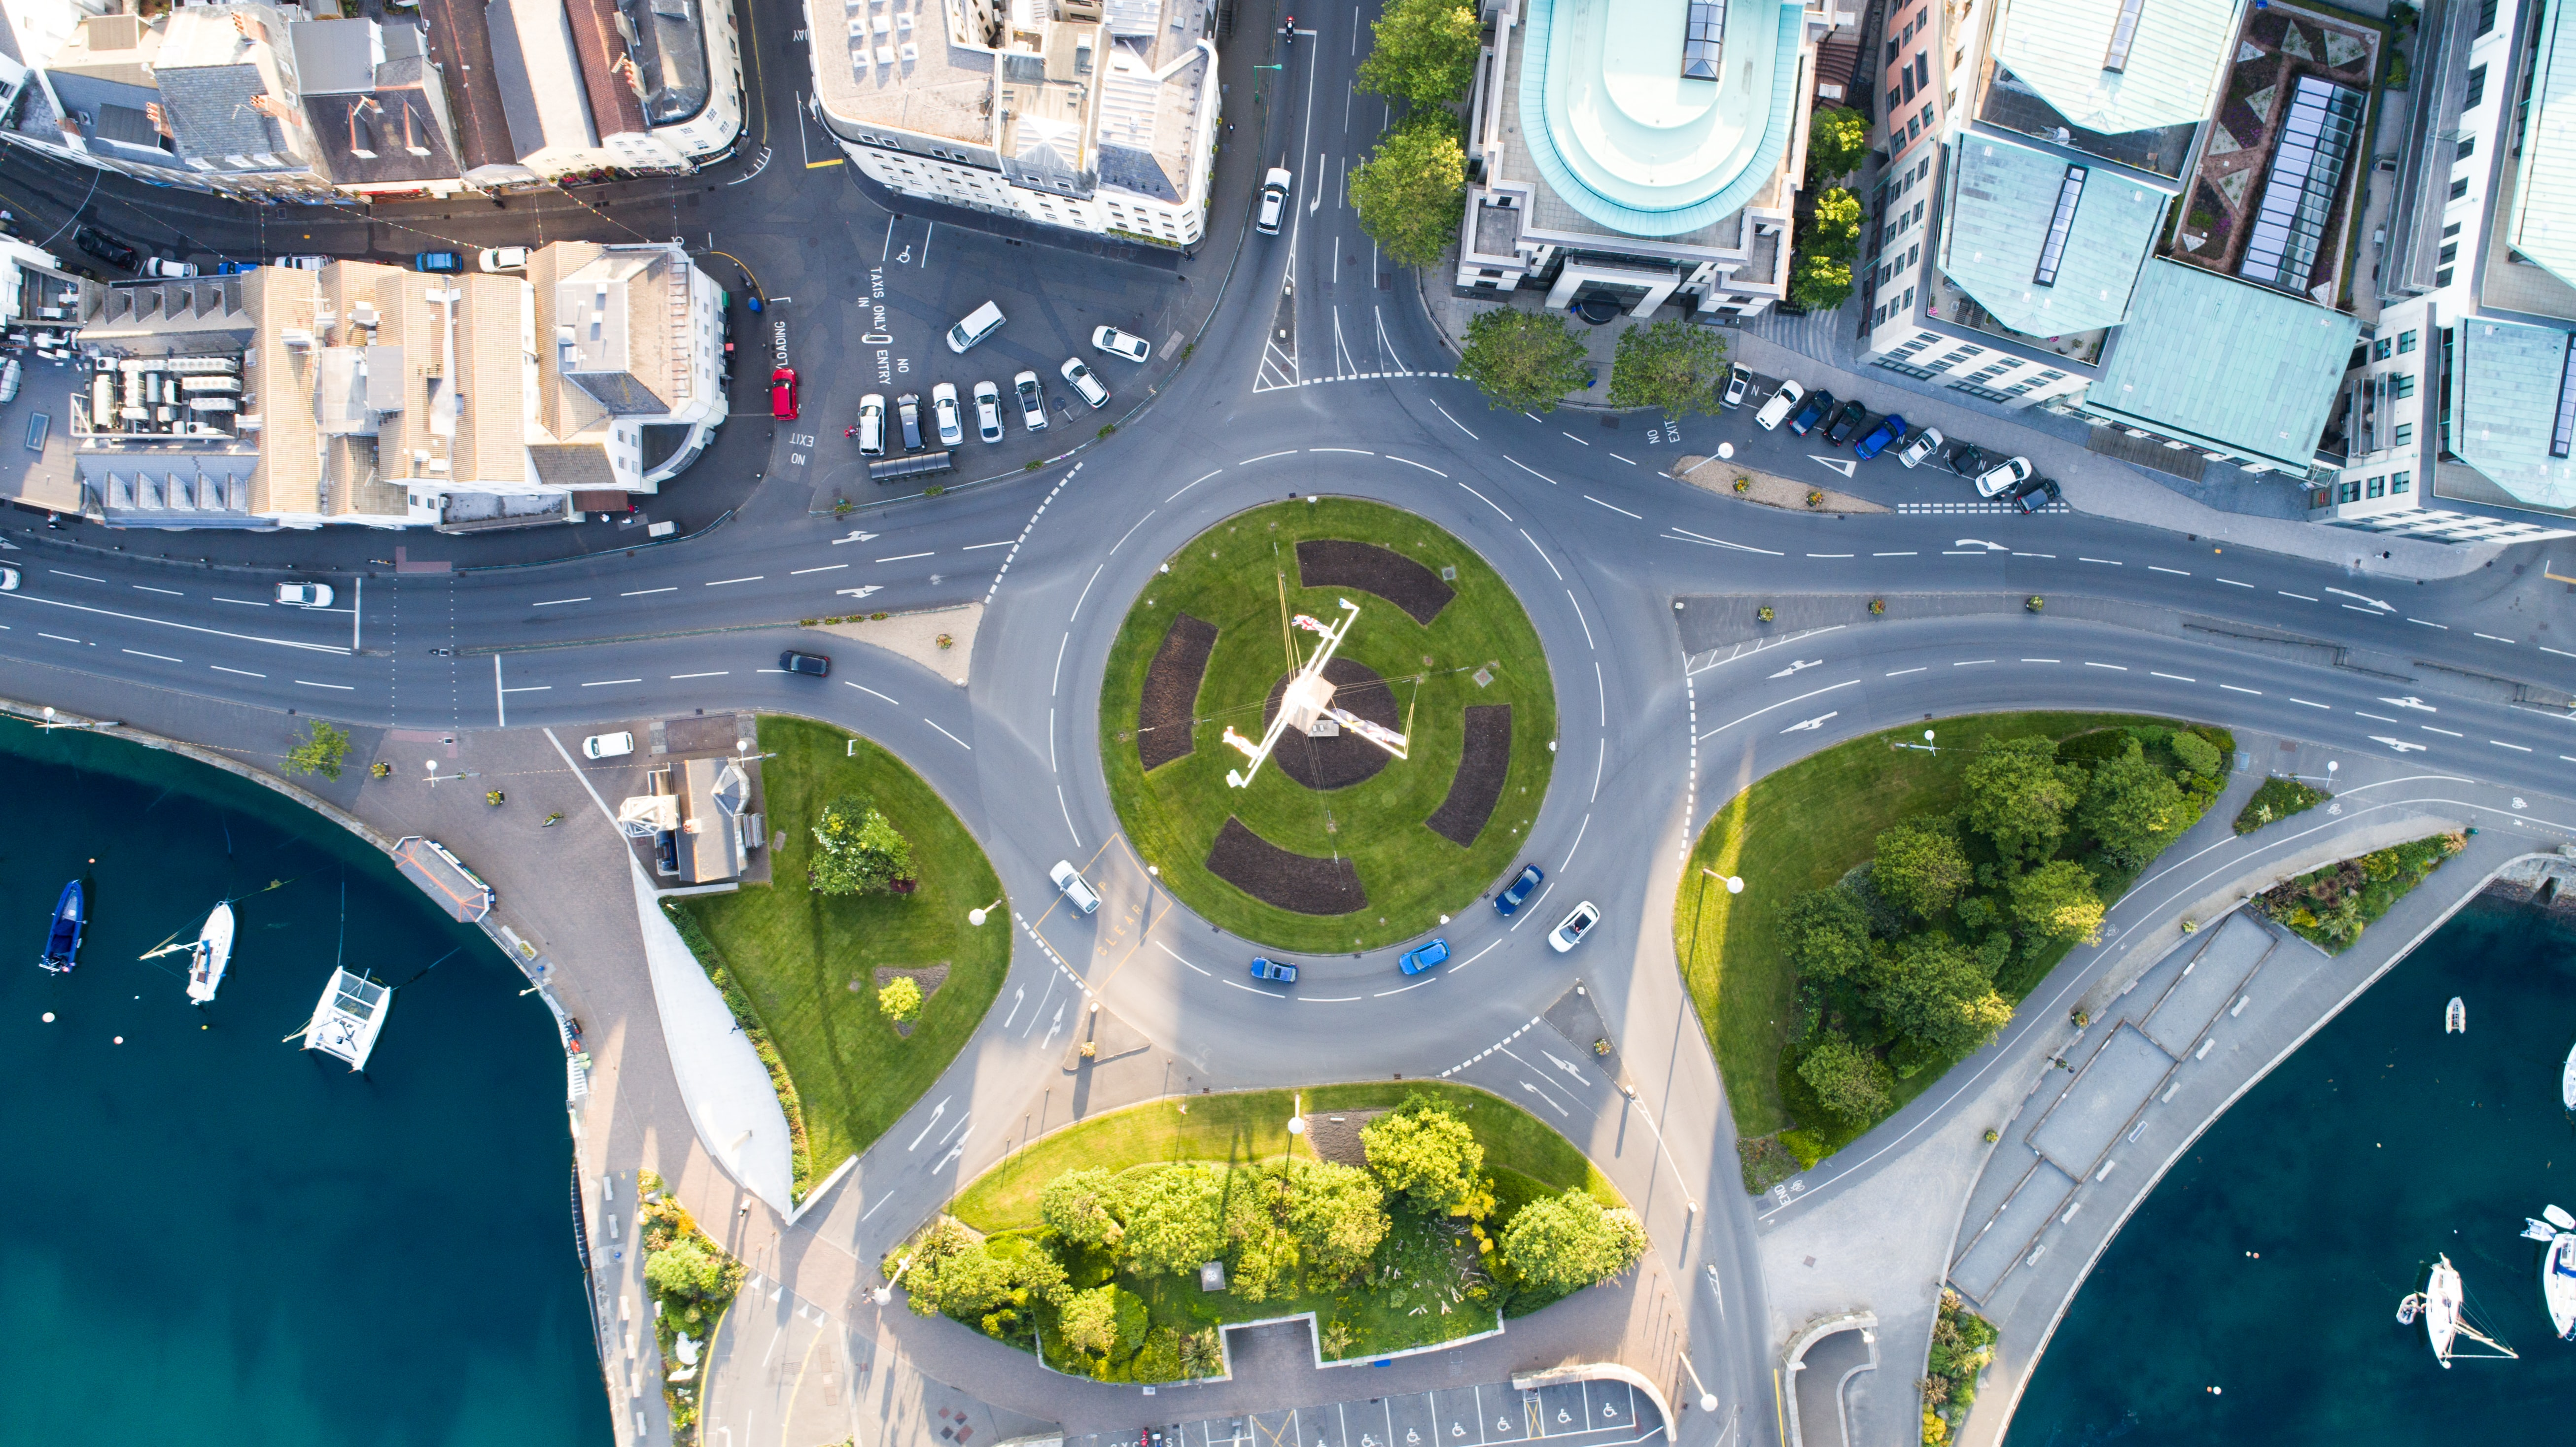 Drone view of cars going through a roundabout in the city